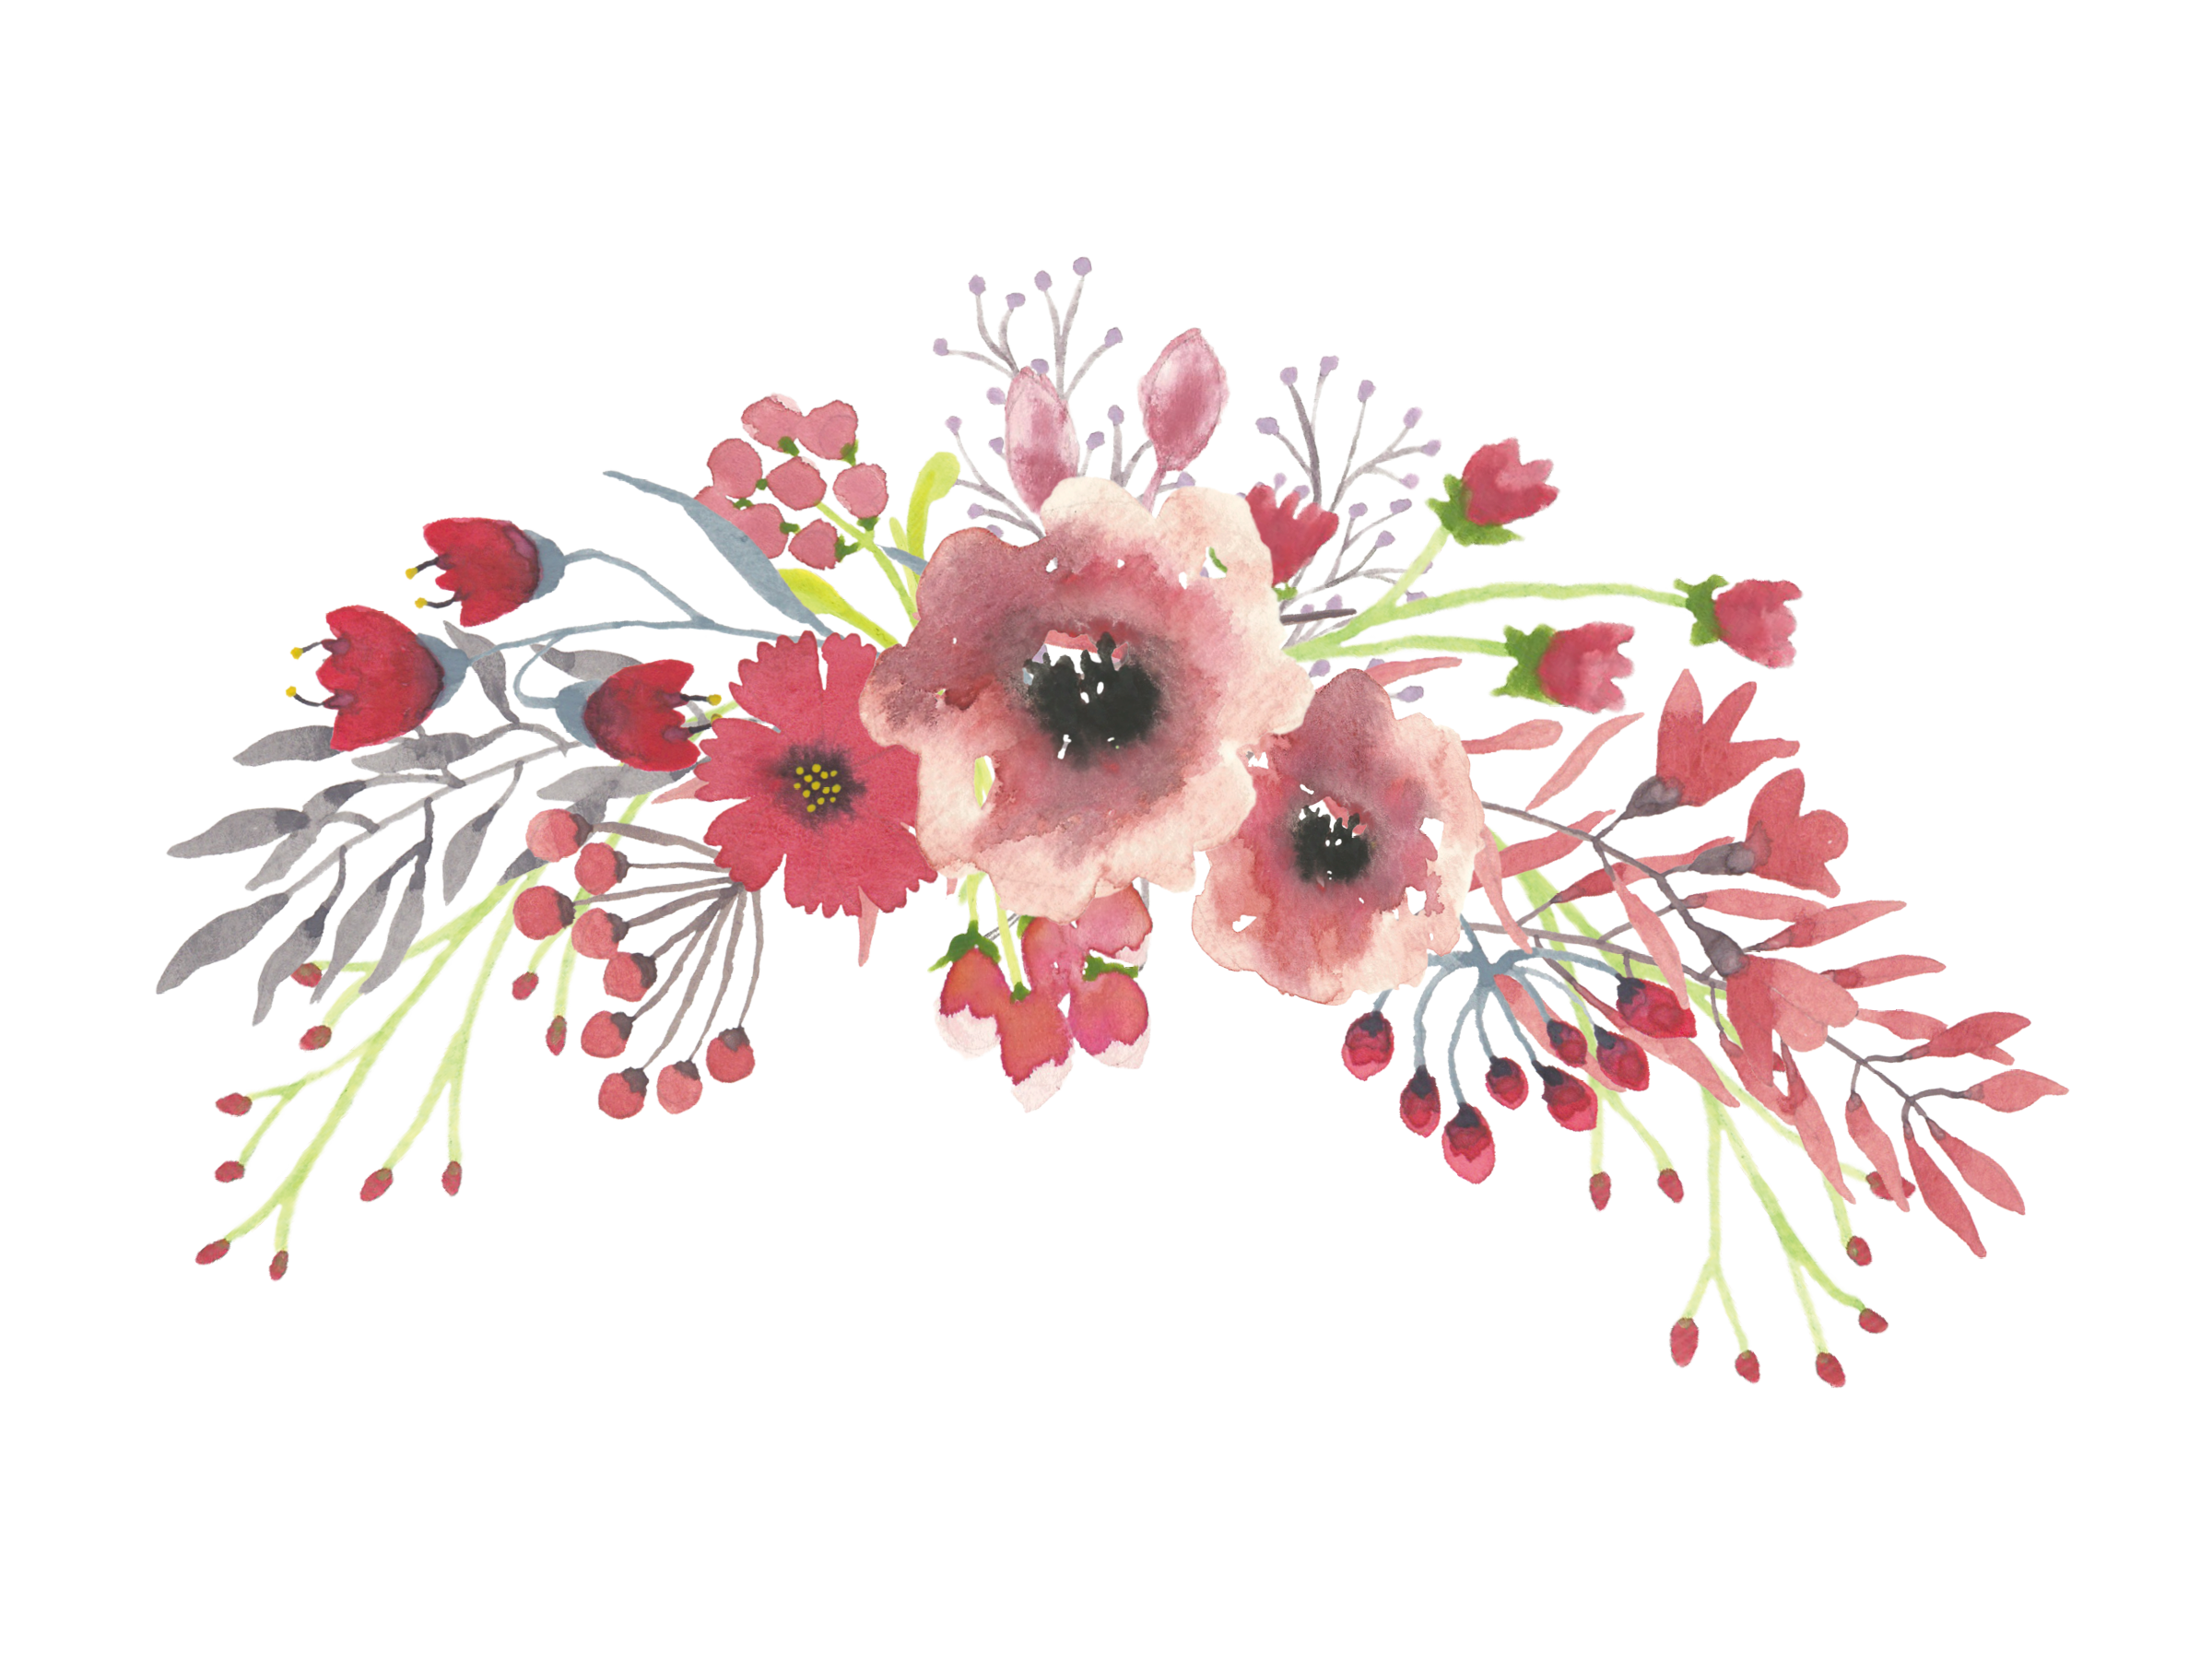 watercolor flowers elements ornaments png free